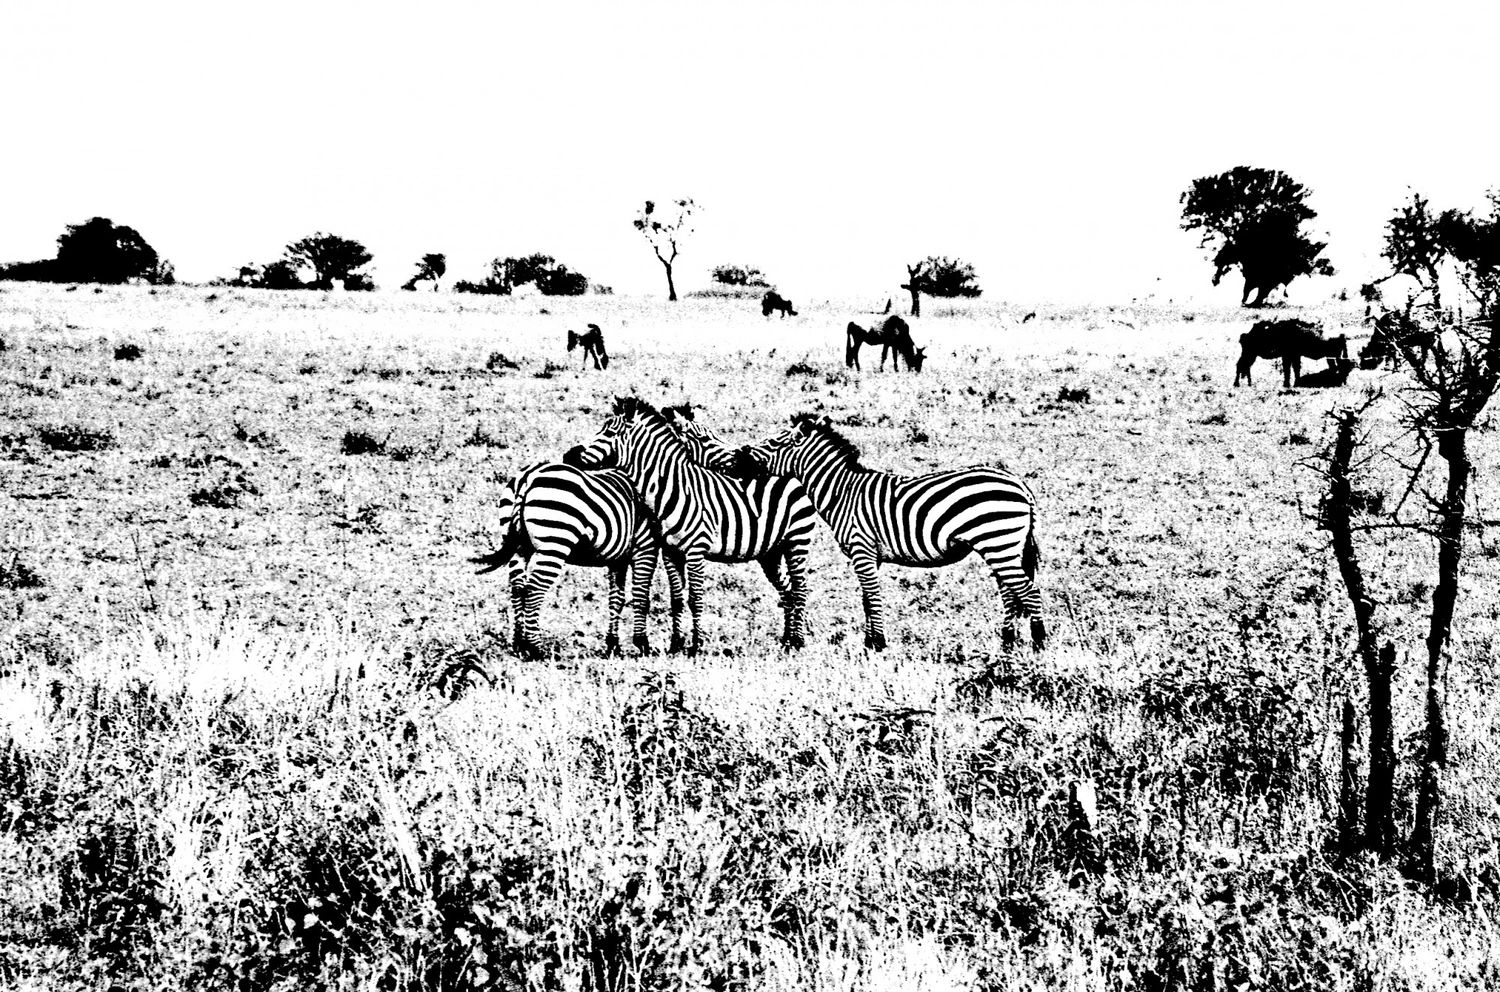 Zebra - 6, Serengeti 2016   Edition 1 of 2